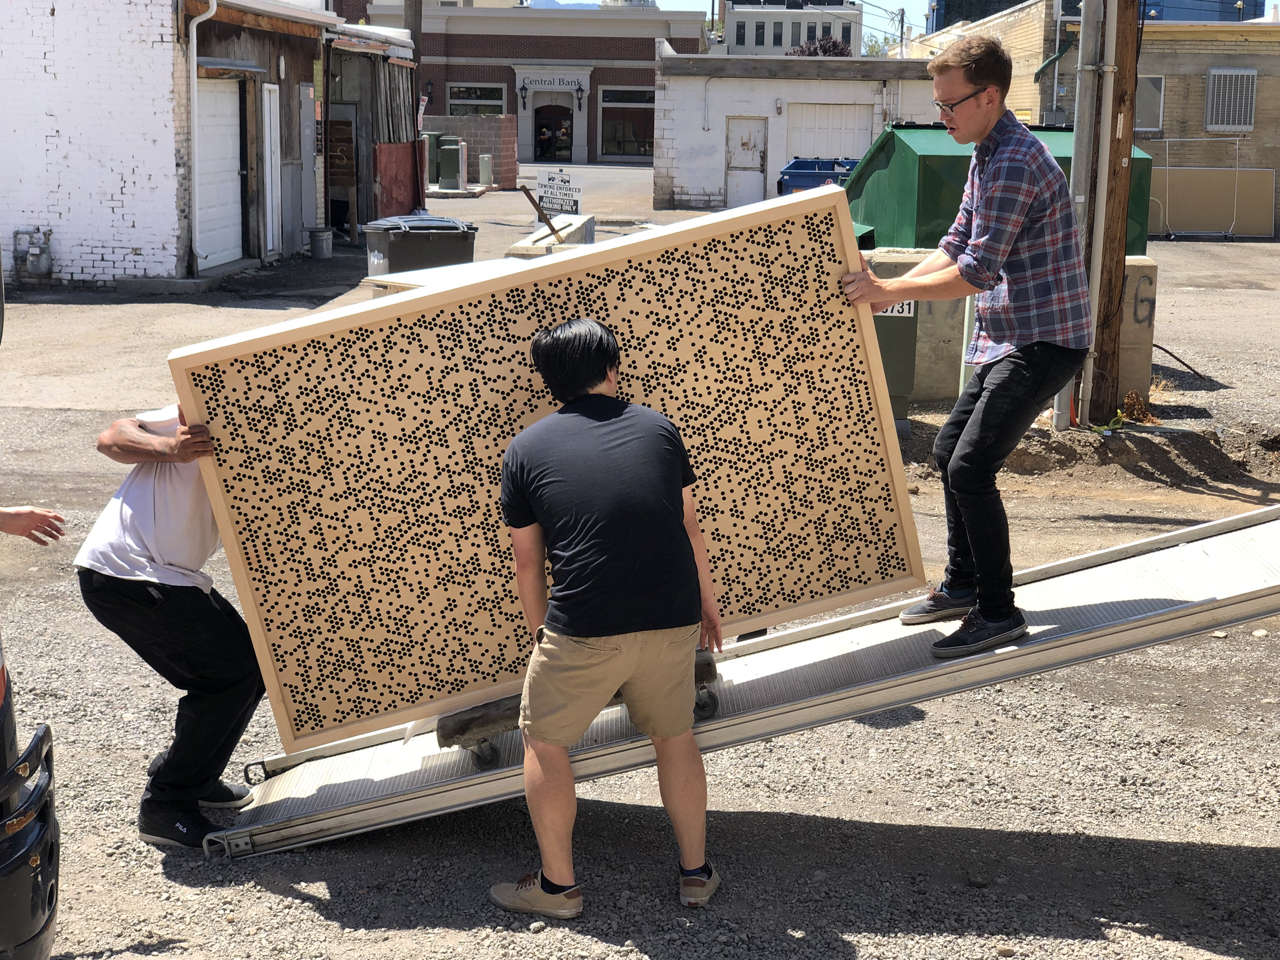 7 of us spent about 4 1/2 hours unloading one of the trucks. There are few thing as nerve-racking as unloading a bunch of finely crafted finished wood work and fragile fabric covered insulation panels. Here we are unloading one of the 6 beautiful gobos Tony Brett and his crew built for us.